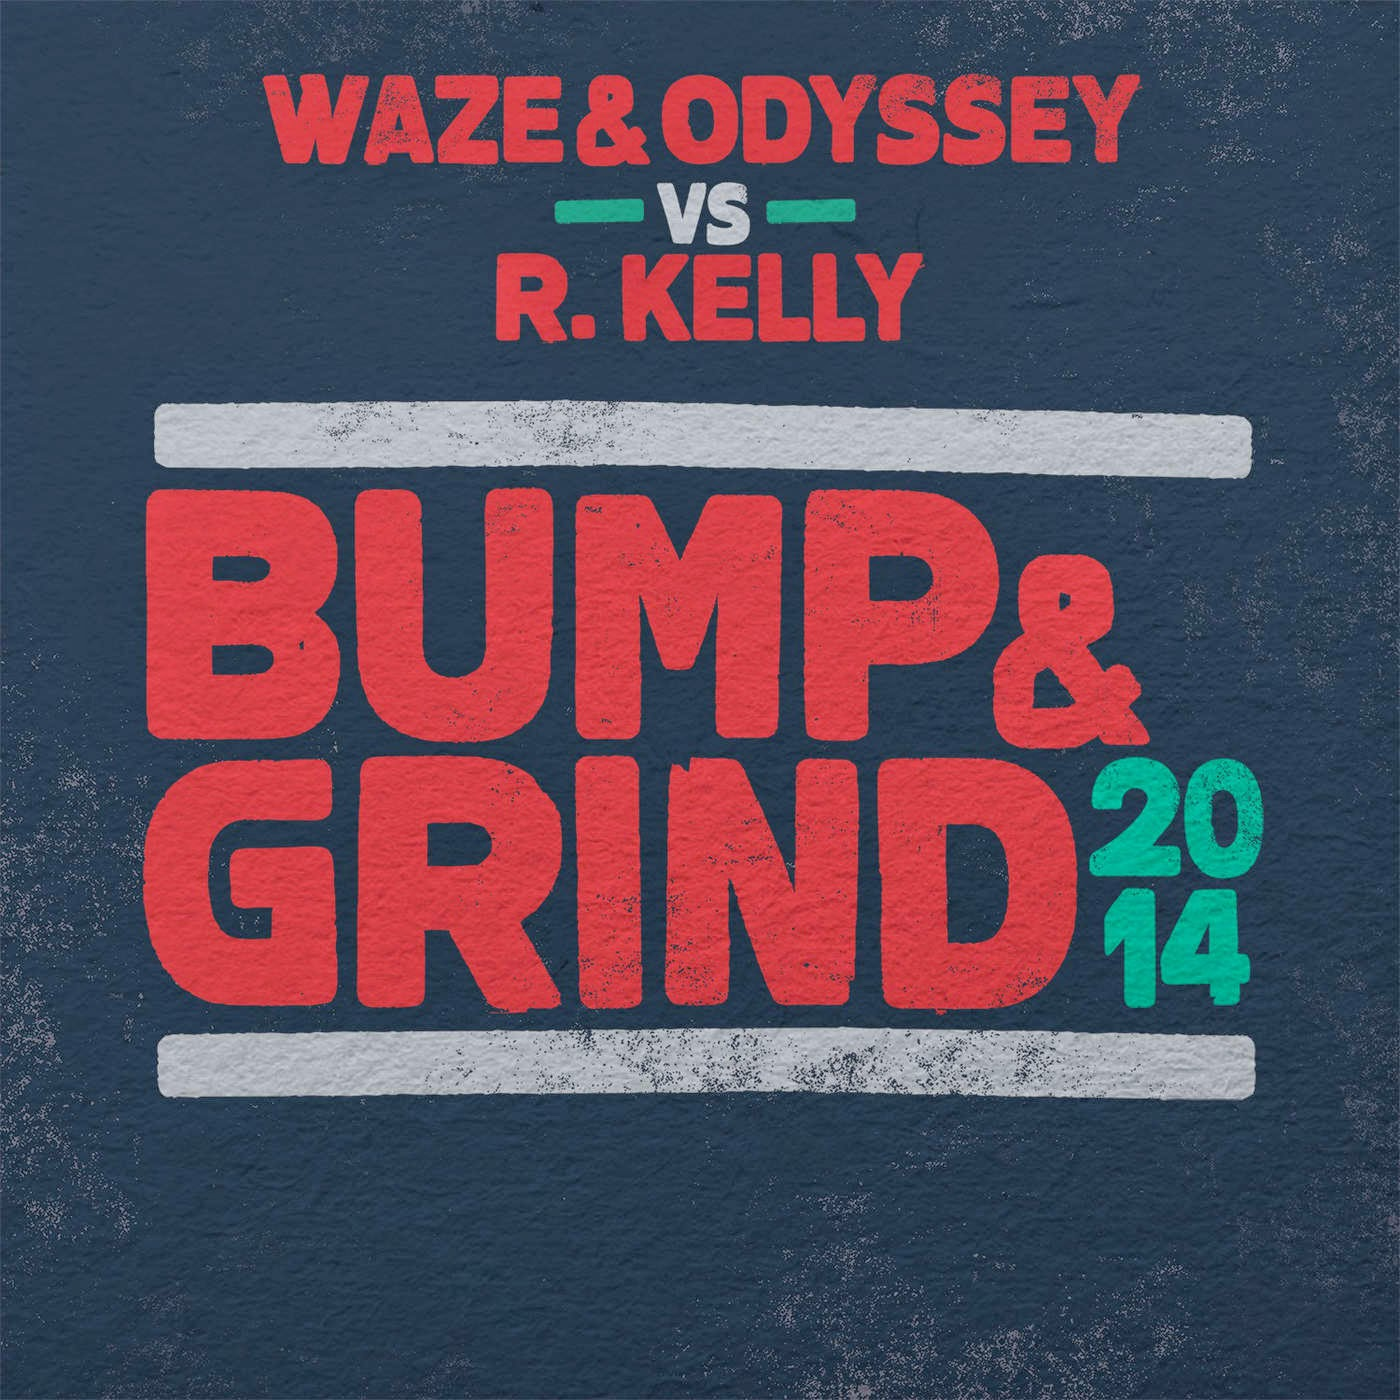 Waze & Odyssey & R. Kelly - Bump & Grind 2014 (Waze & Odyssey vs. R. Kelly) - Single (iTunes Plus AAC M4A)